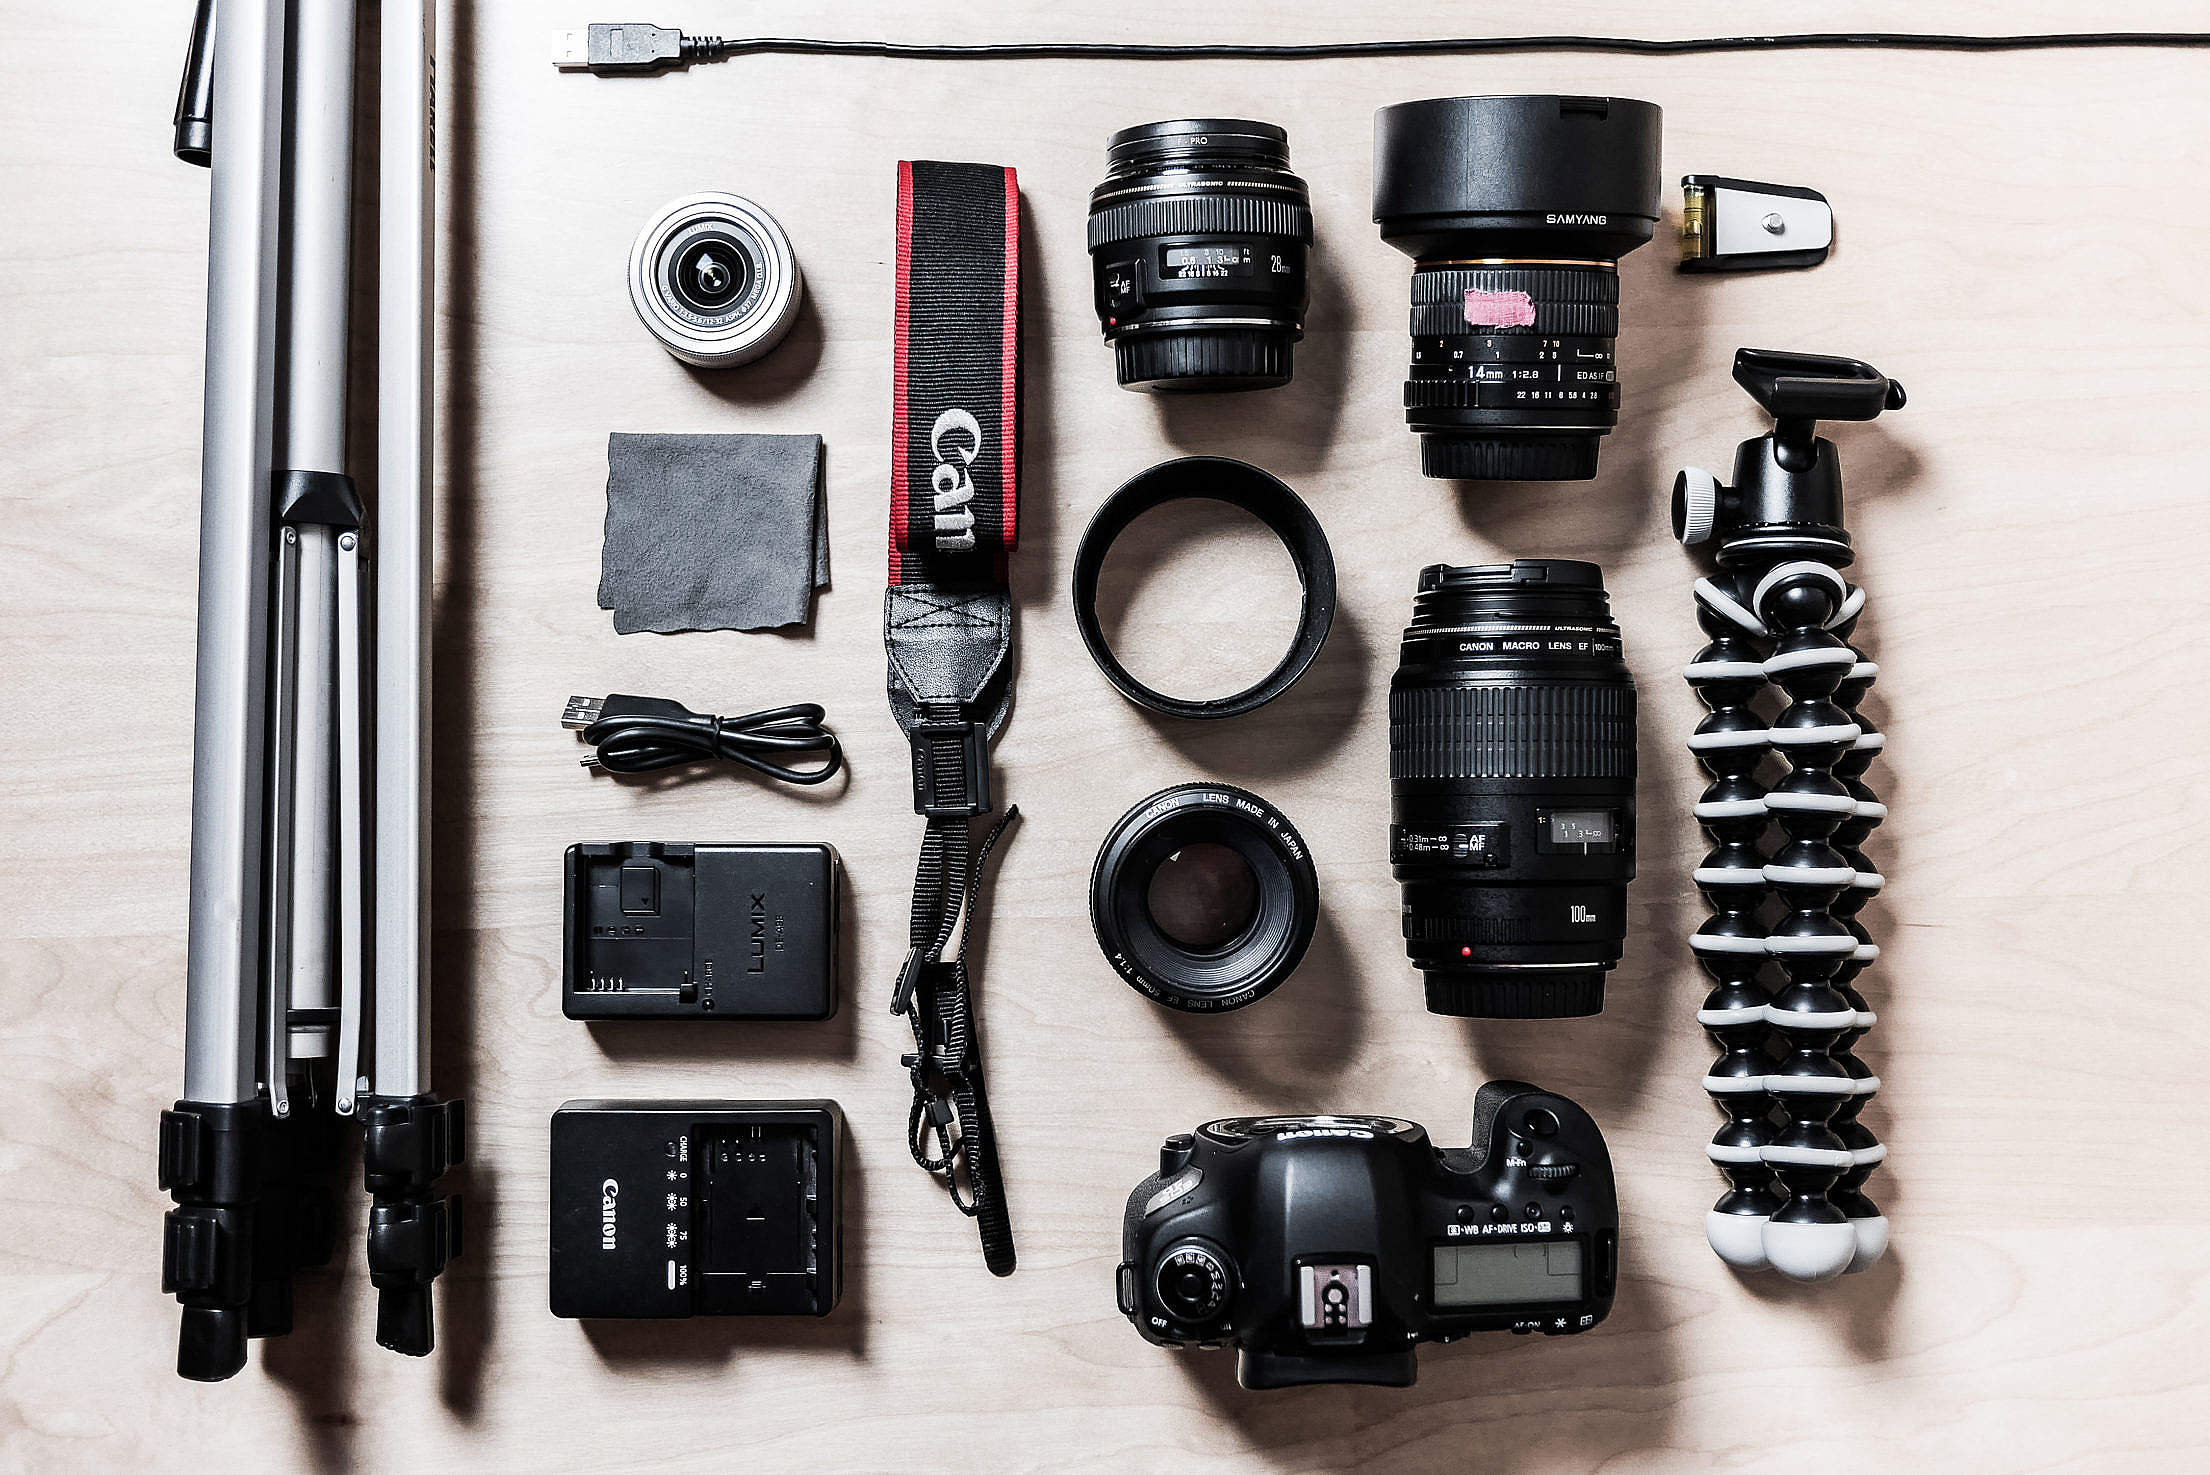 Download Camera Gear Photographer Equipment Free Stock Photo